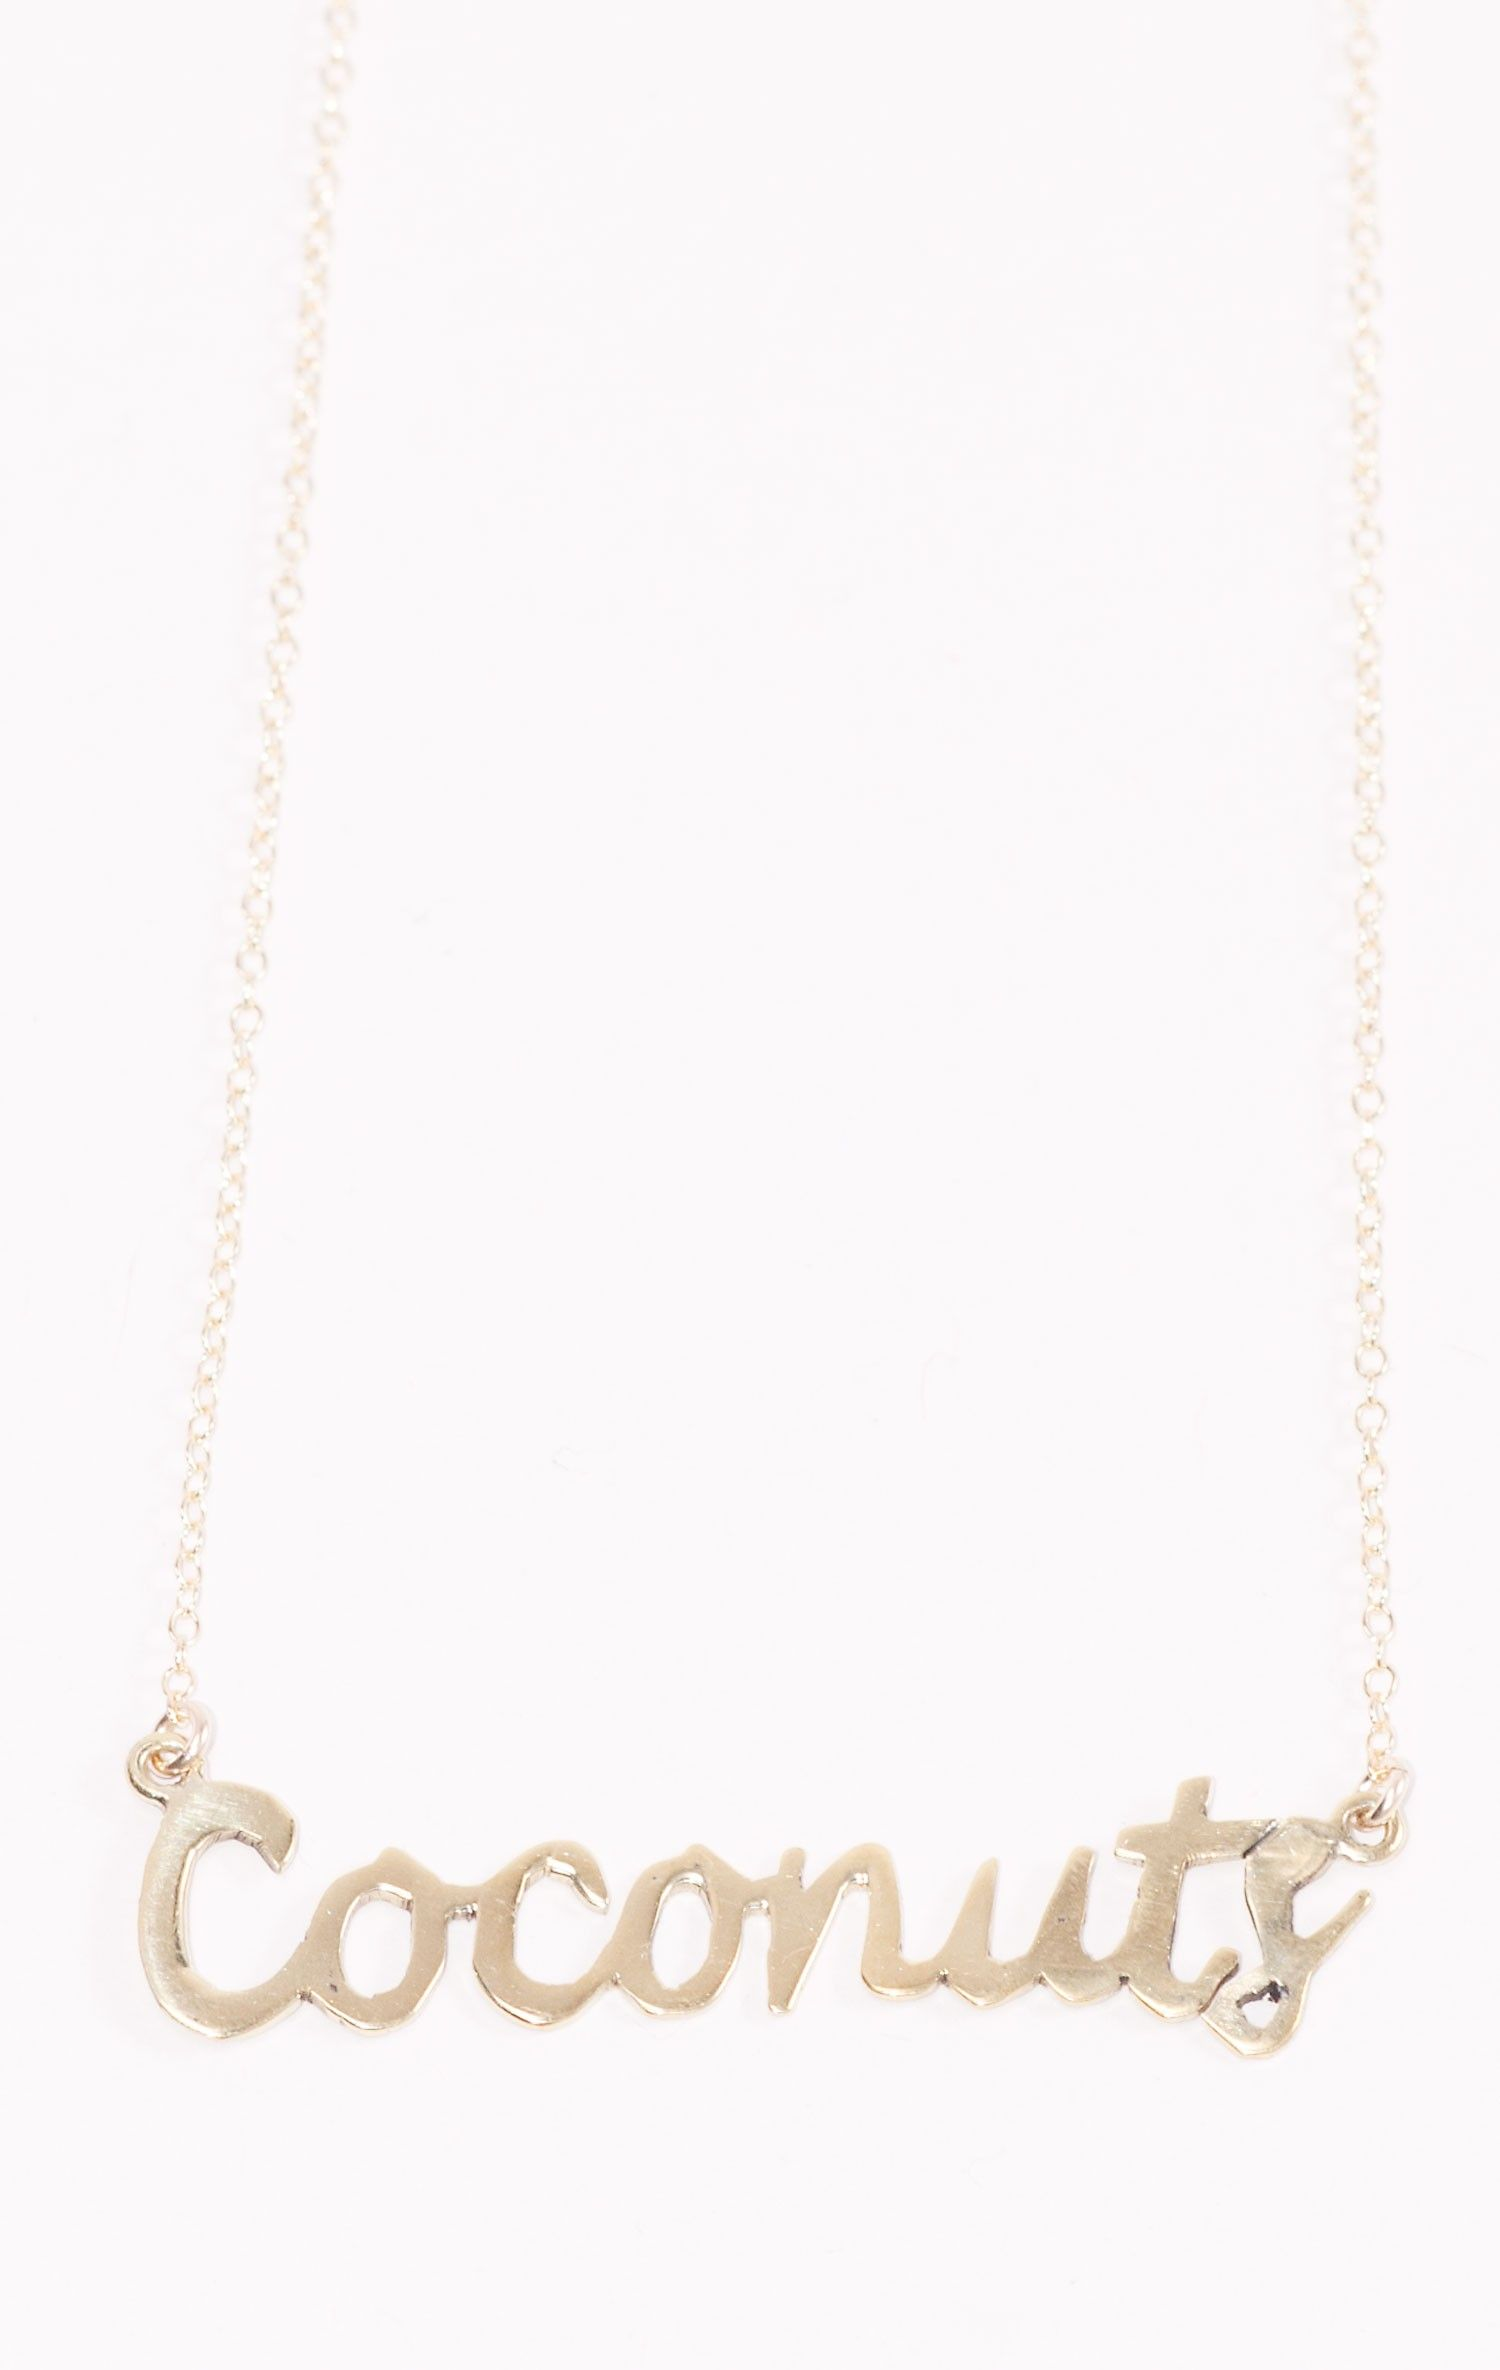 68f14c801 Coconuts word necklace   bijoux!   Jewelry, Ring earrings, Jewelry ...